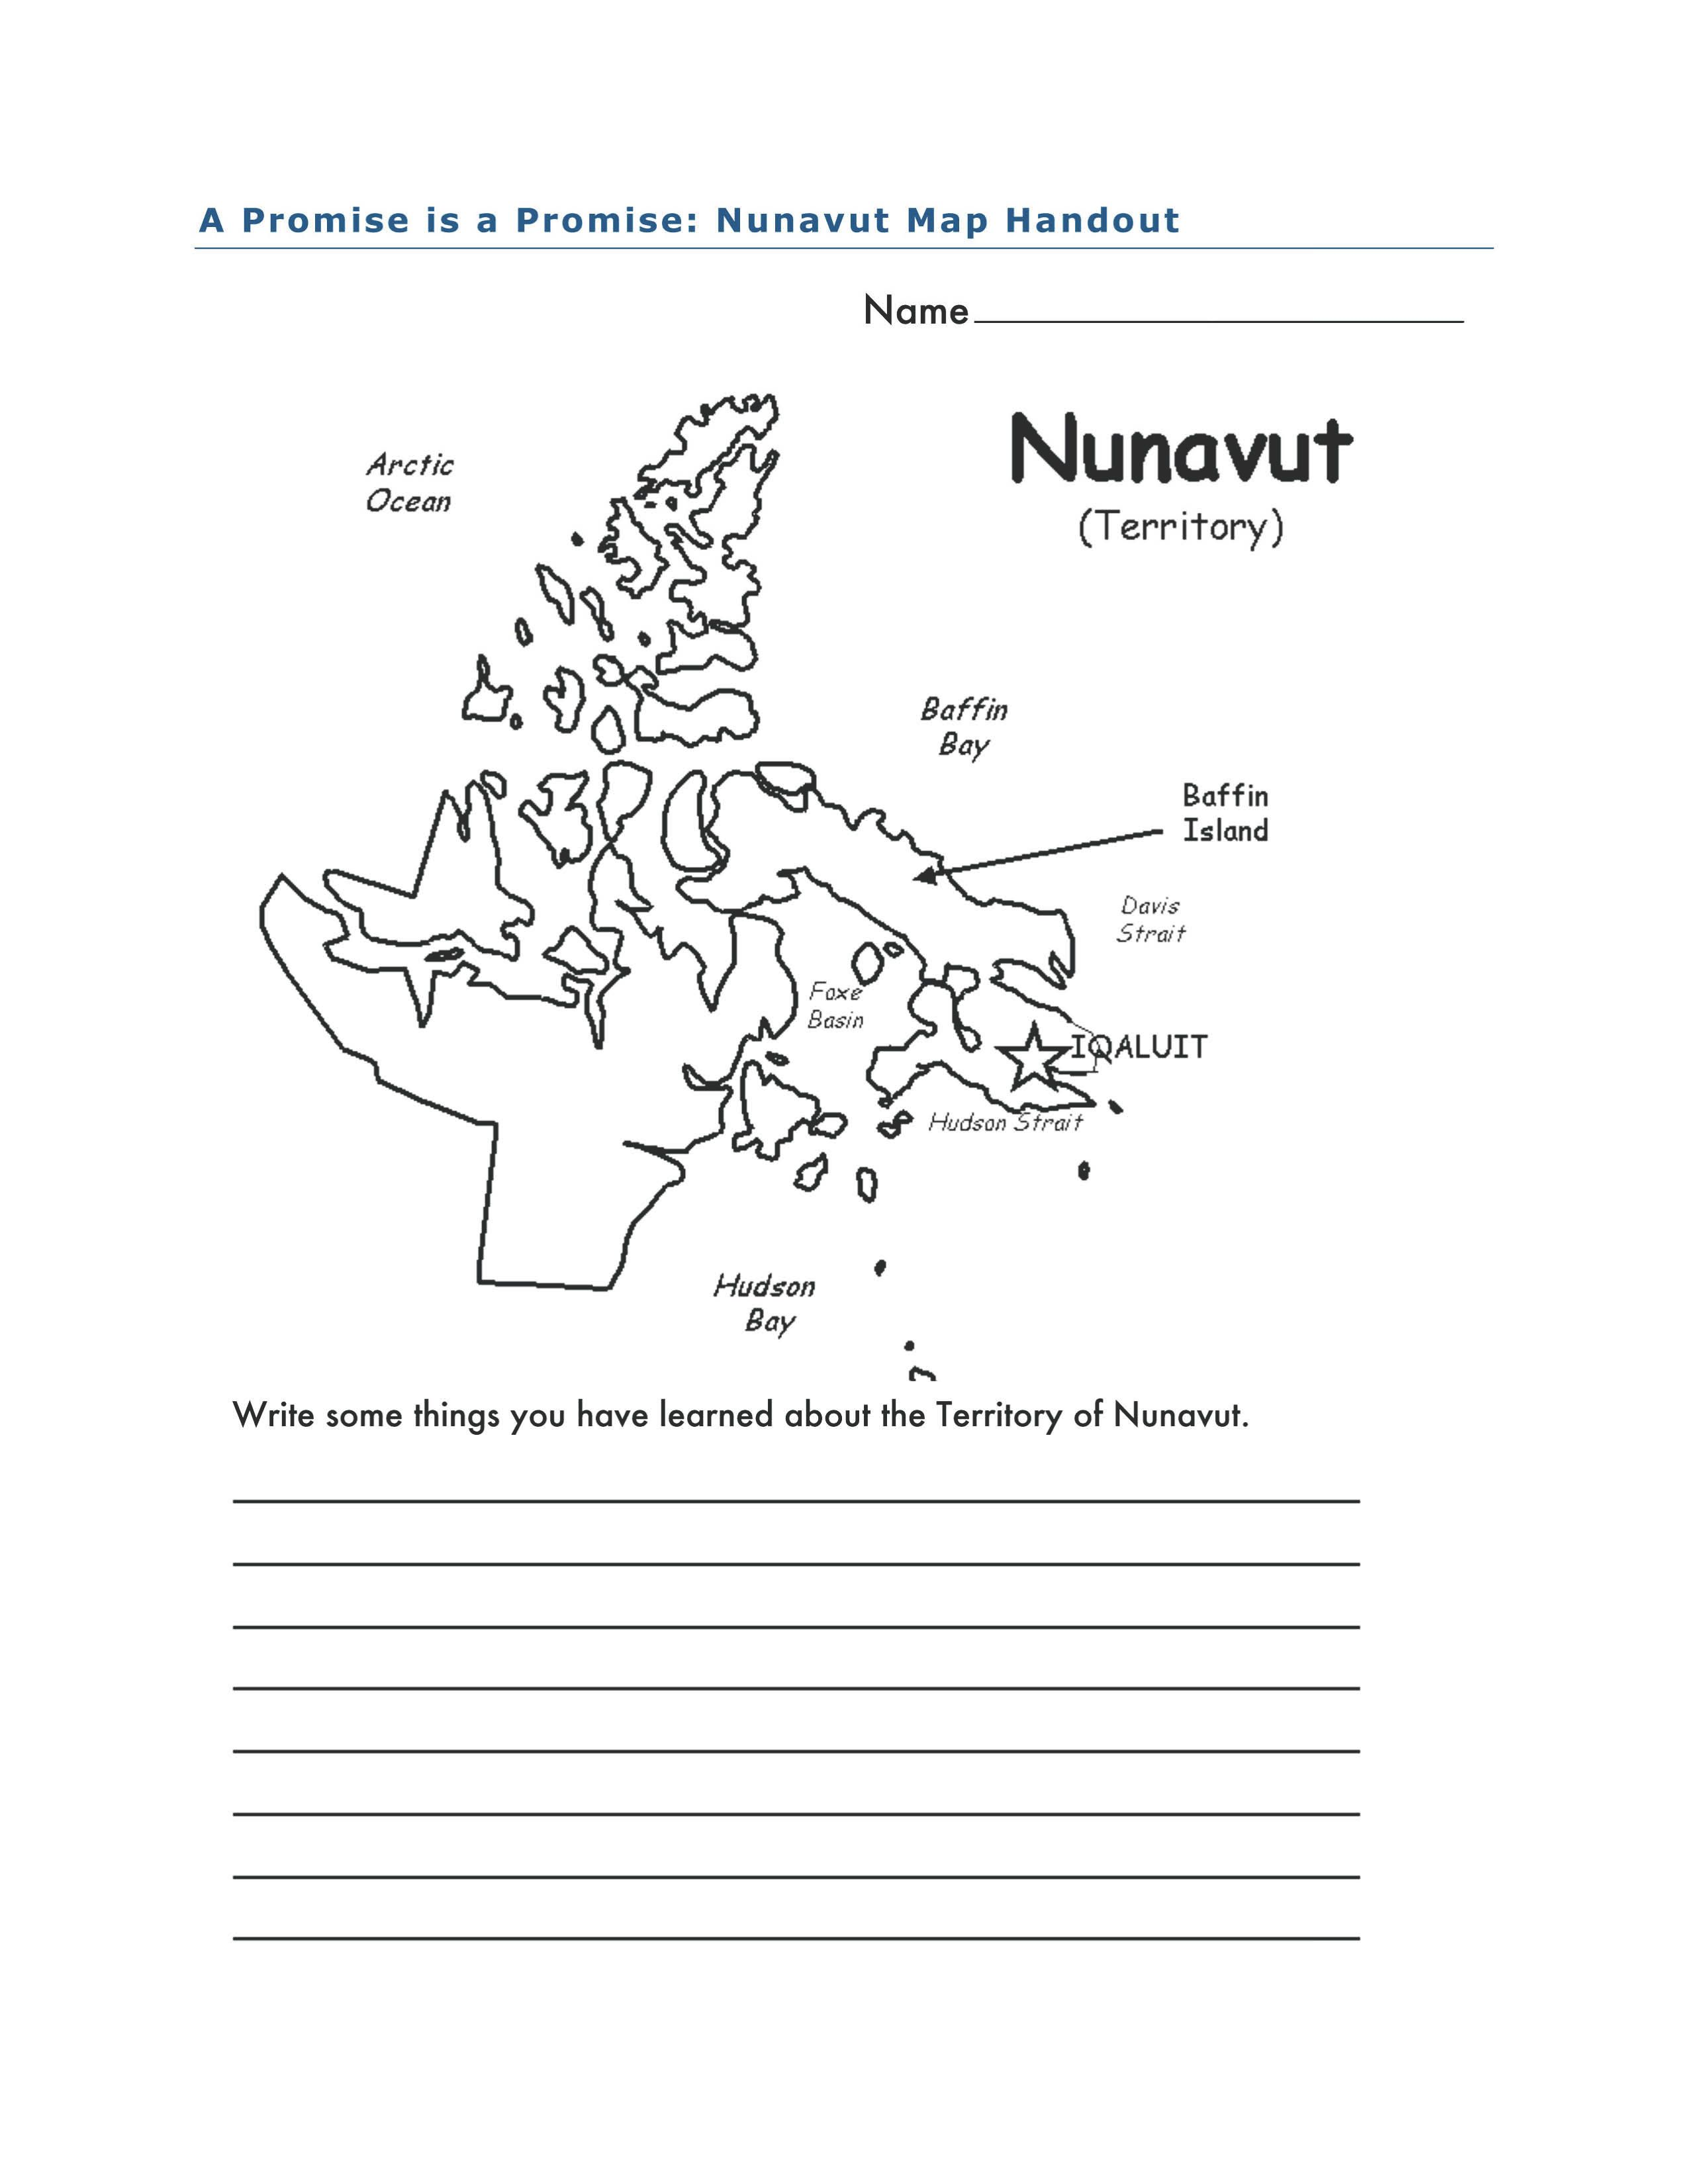 Nunavut Map Activity For A Promise Is A Promise By Robert